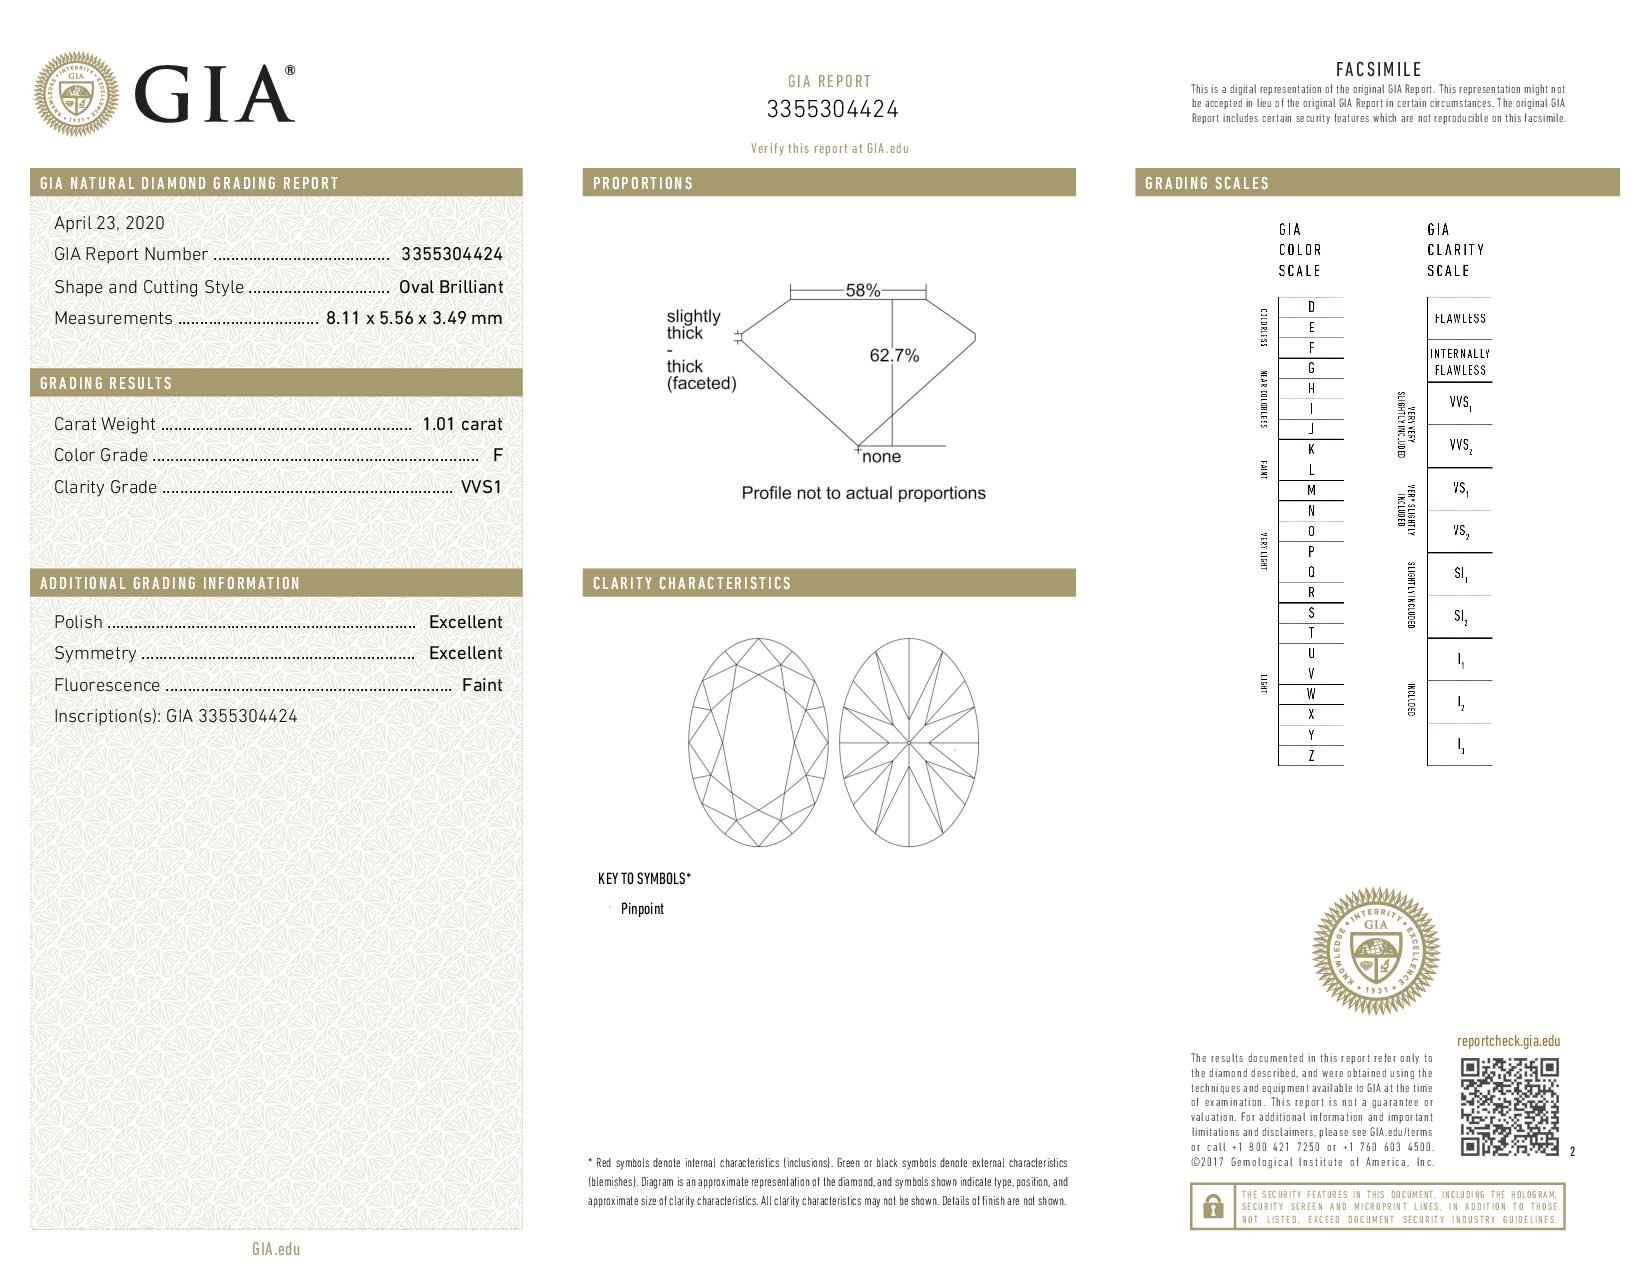 This is a 1.01 carat oval shape, F color, VVS1 clarity natural diamond accompanied by a GIA grading report.